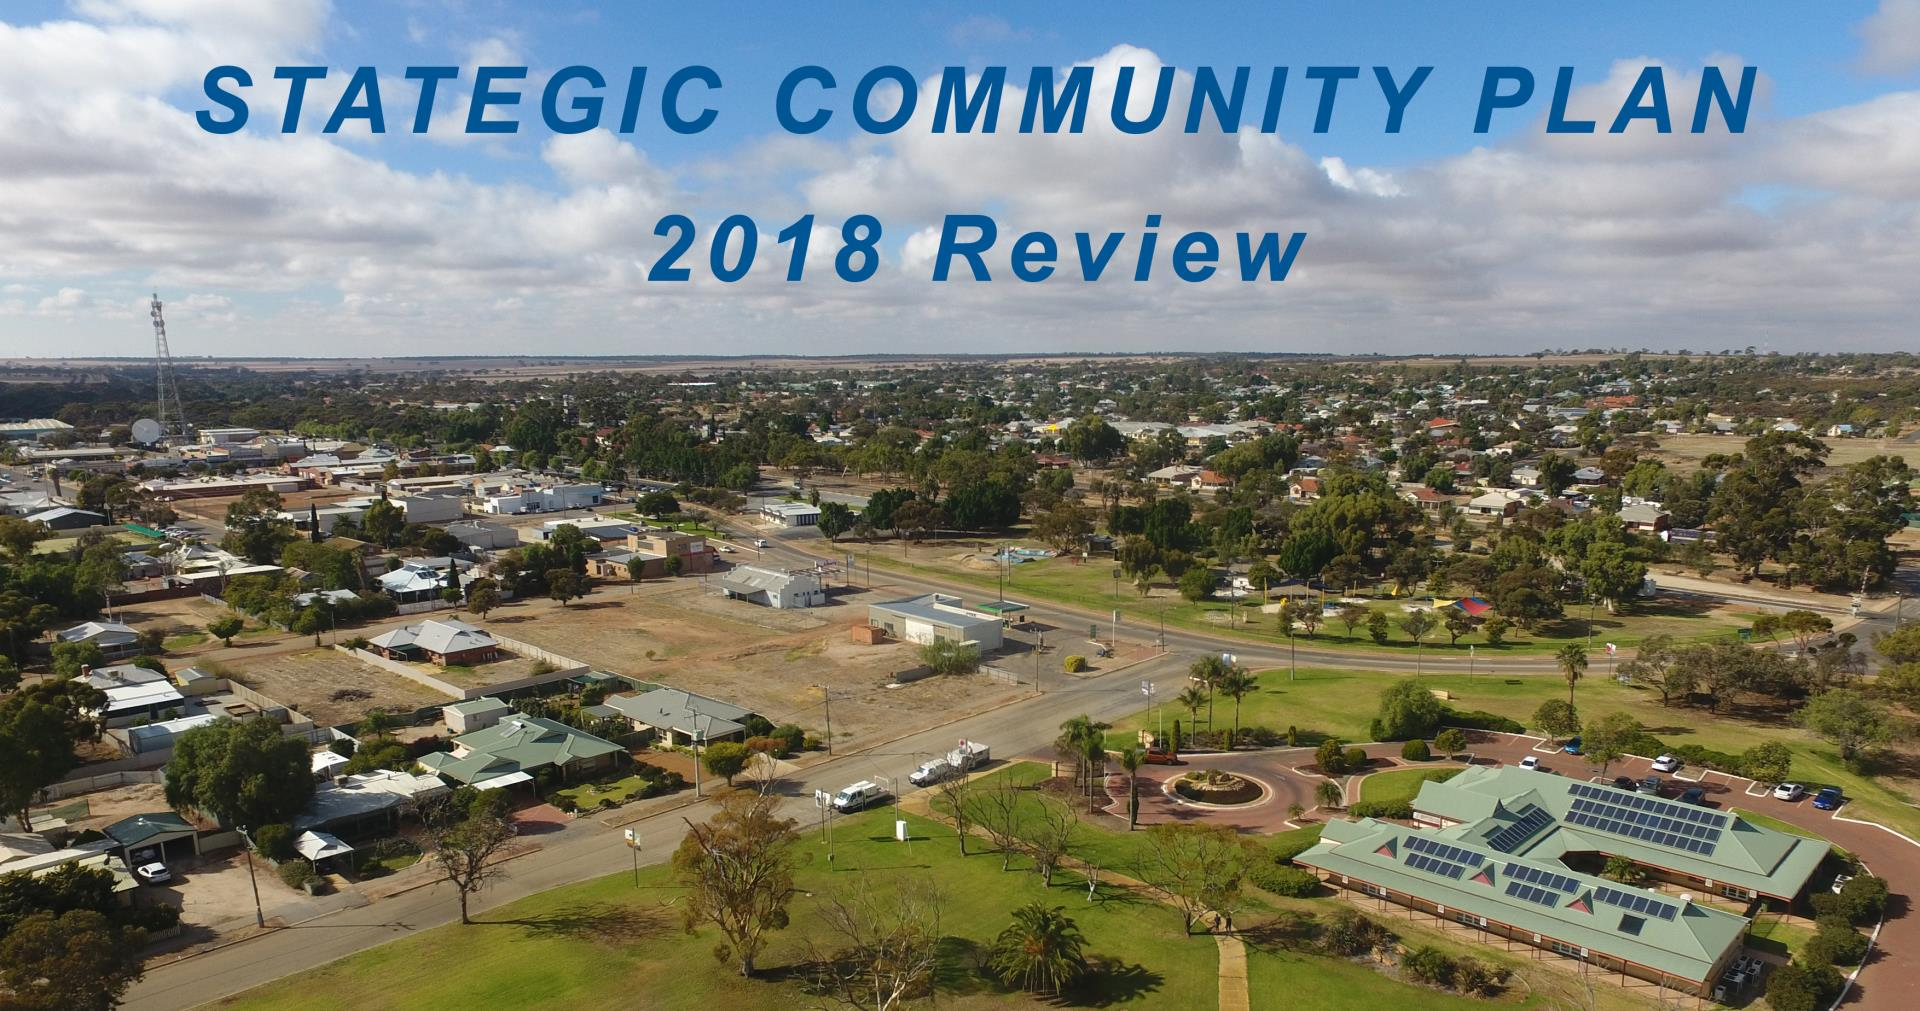 SCP REVIEW – COMMUNITY ENGAGEMENT SUMMARY - FEEDBACK SOUGHT